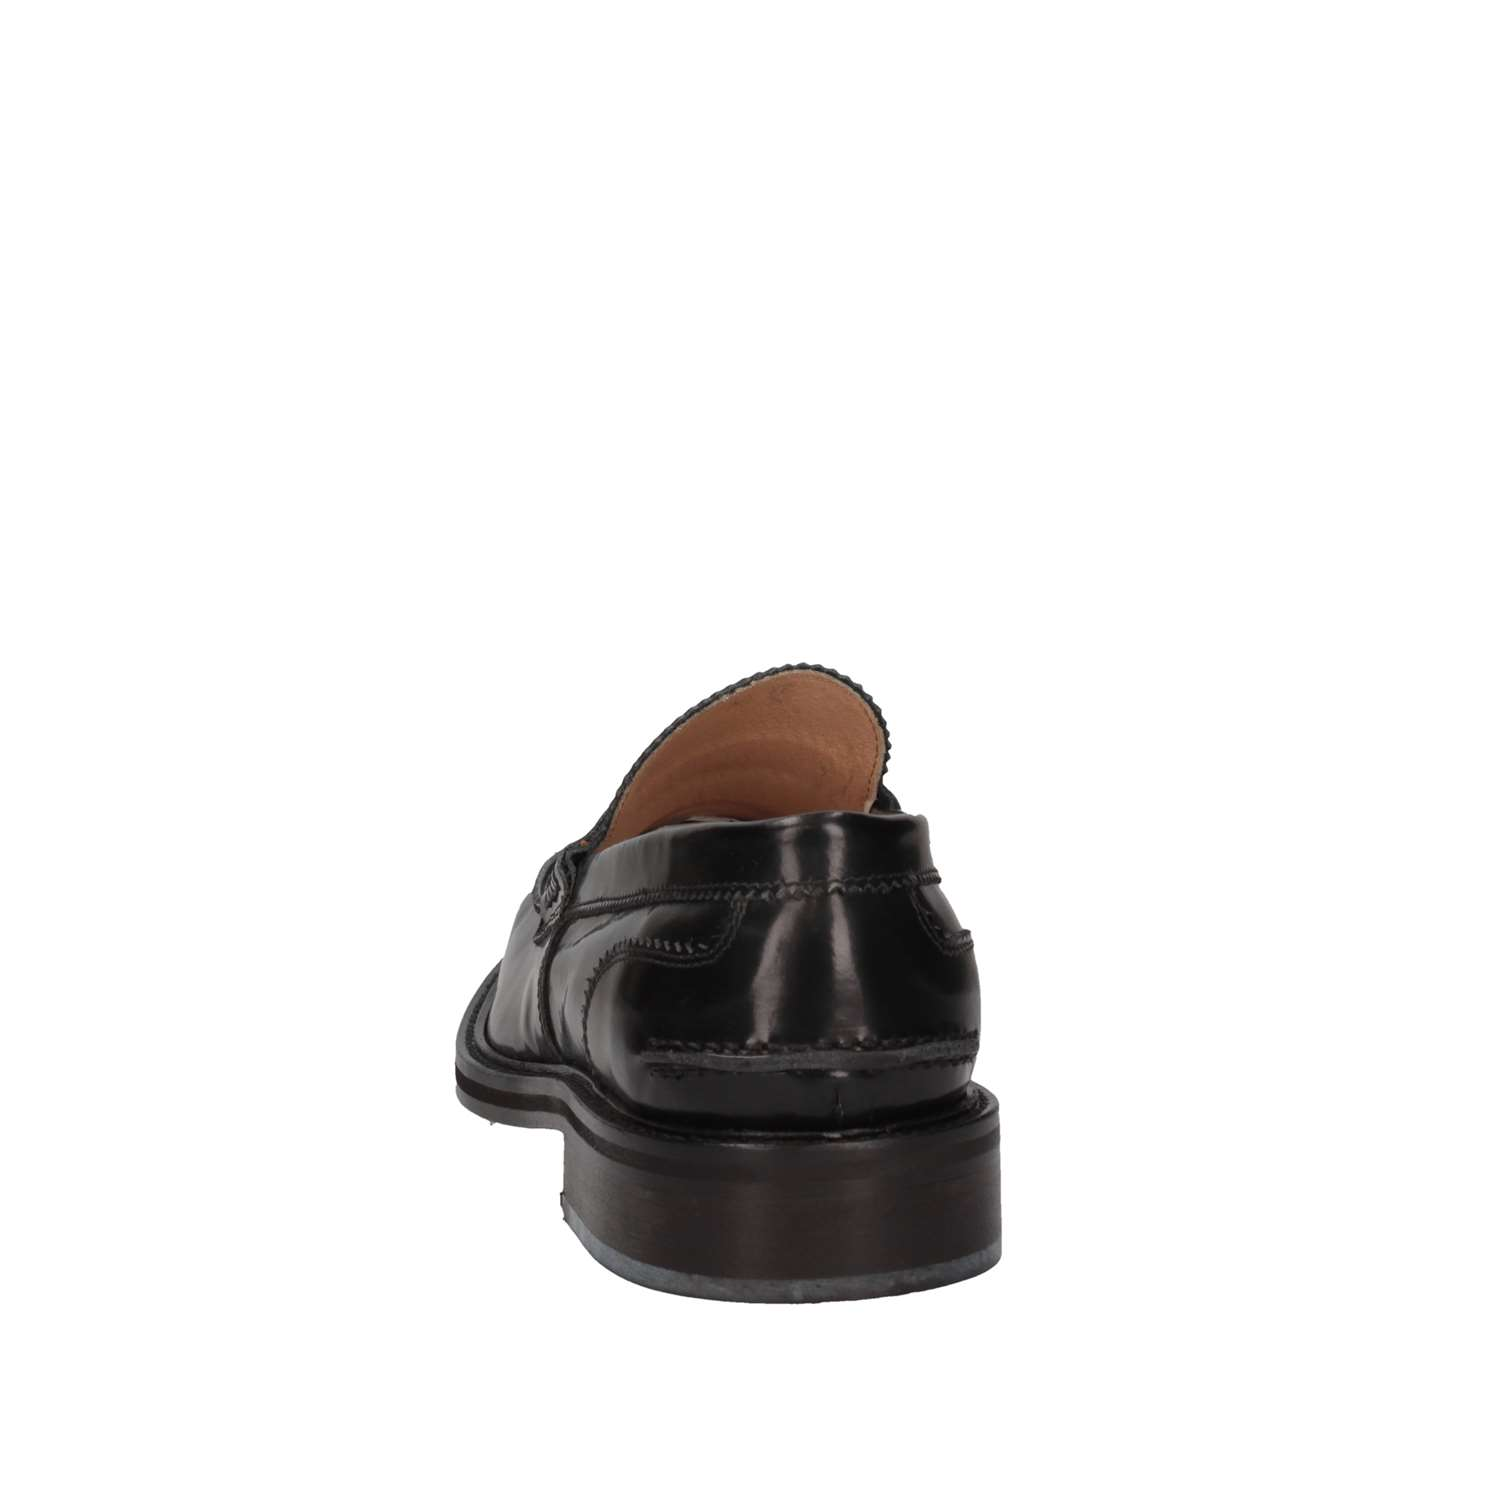 Andre' 301-16 NERO Black Shoes Man